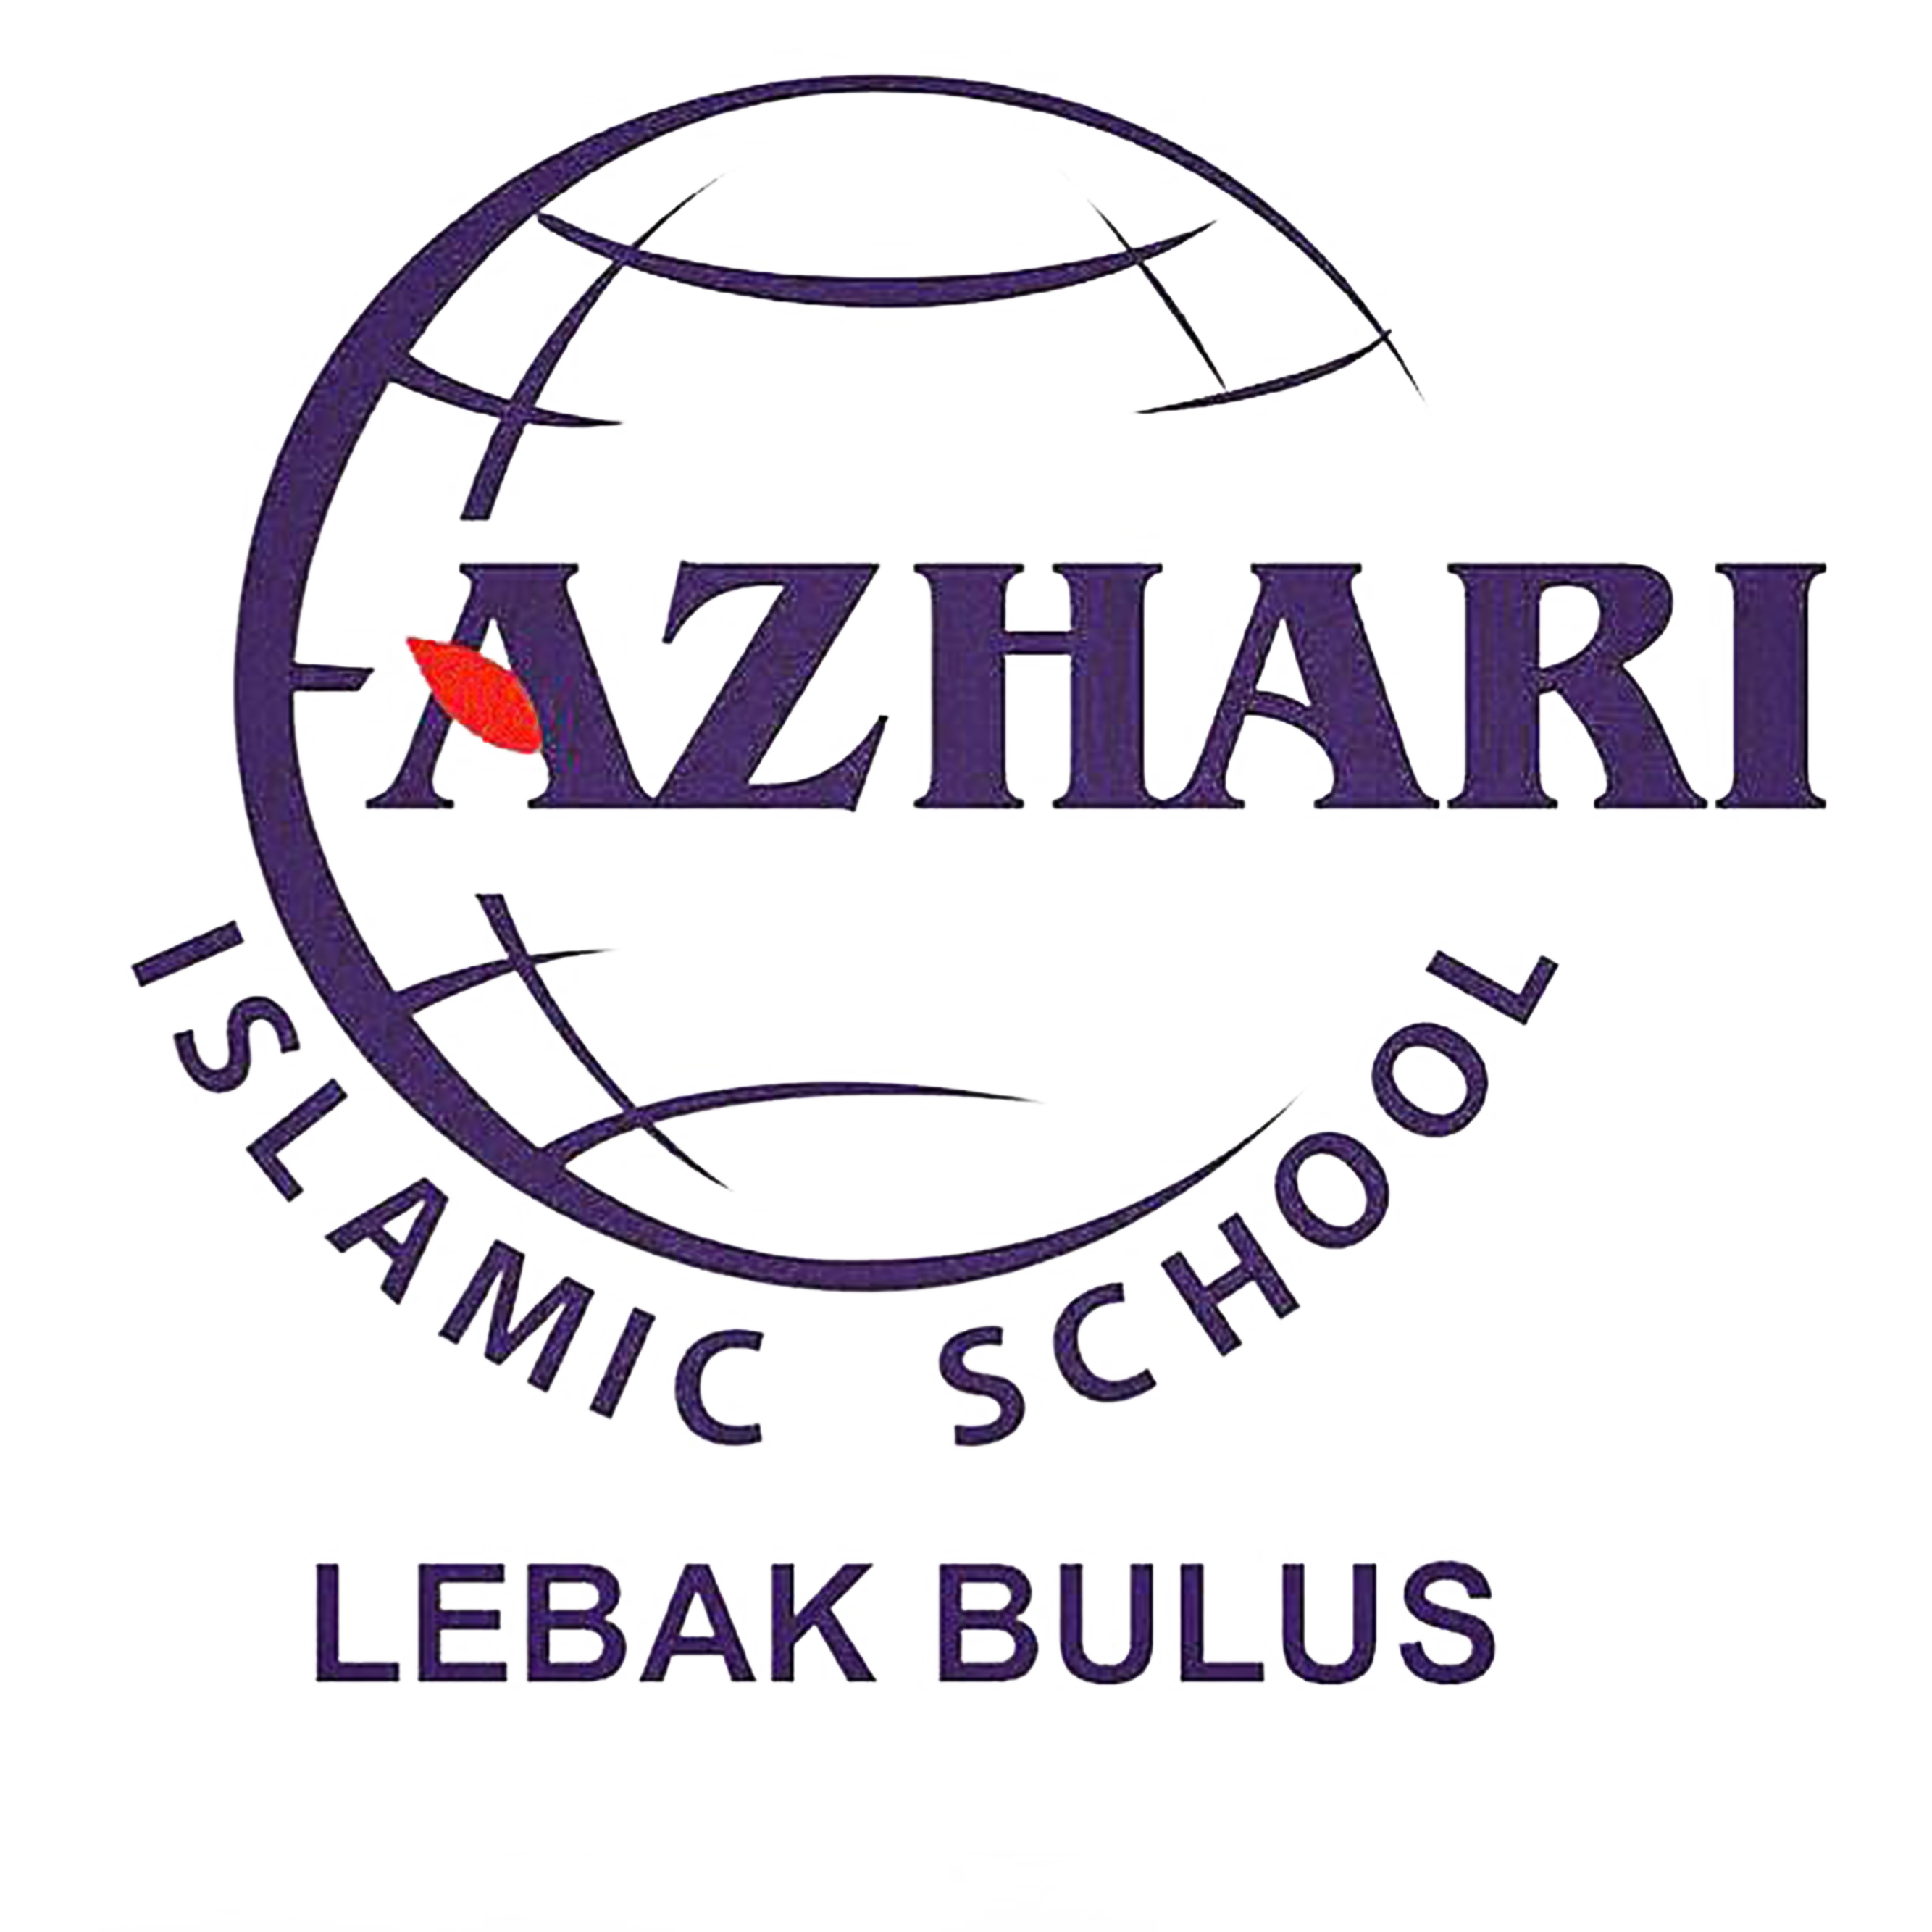 Azhari Islamic School Lebak Bulus Jakarta - Junior High